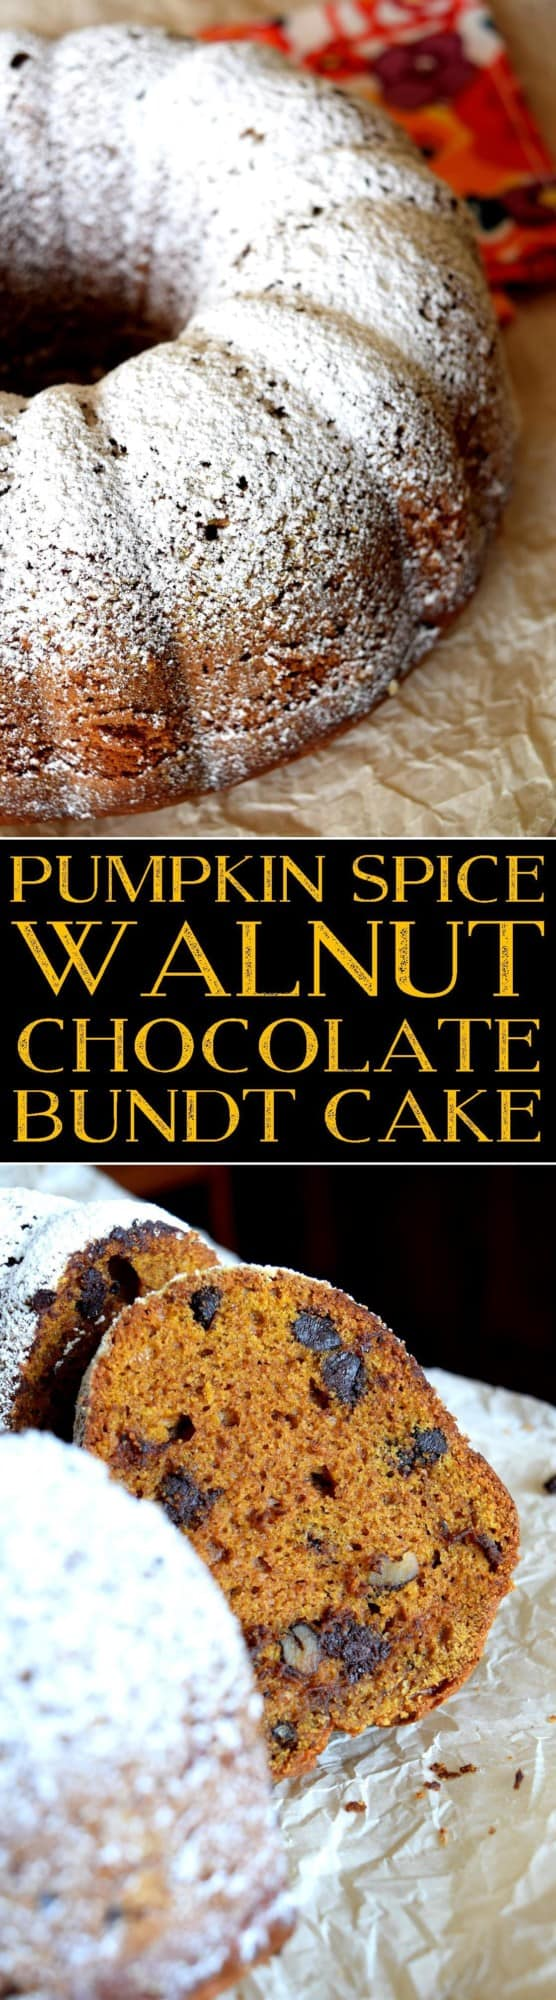 pumpkin-spice-walnut-chocolate-bundt